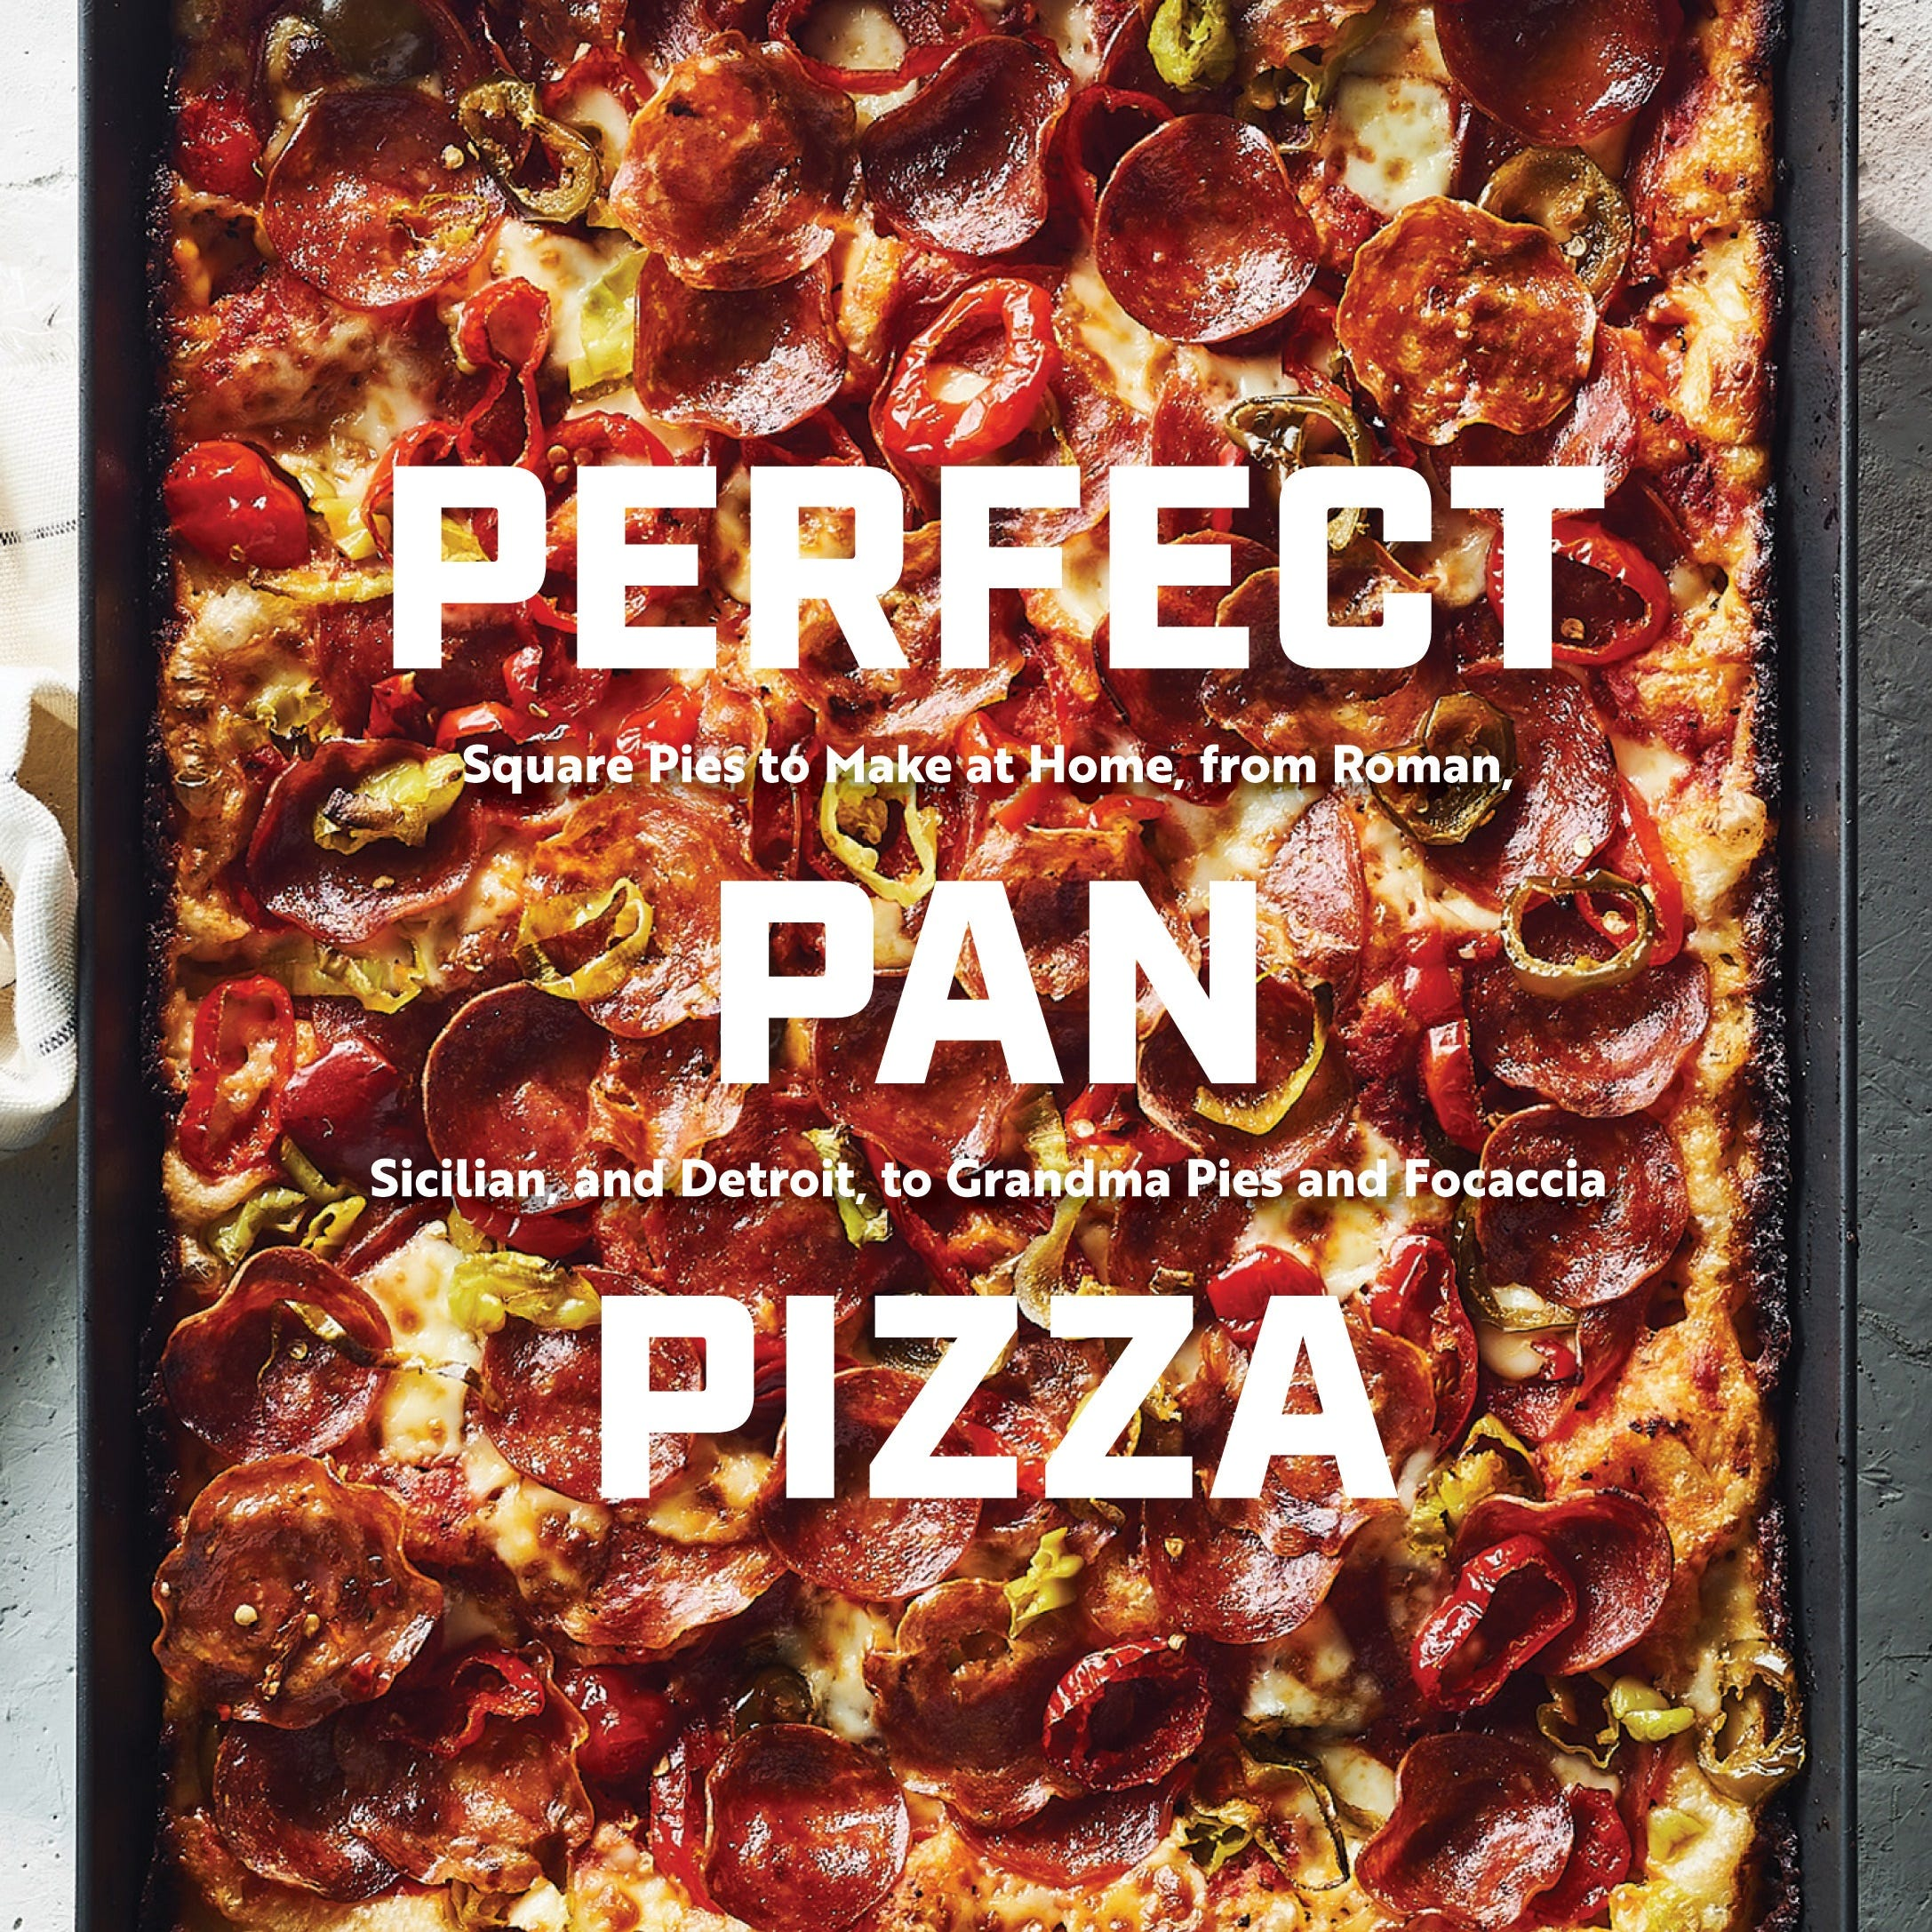 Bread expert highlights Detroit-style pizza in new cookbook